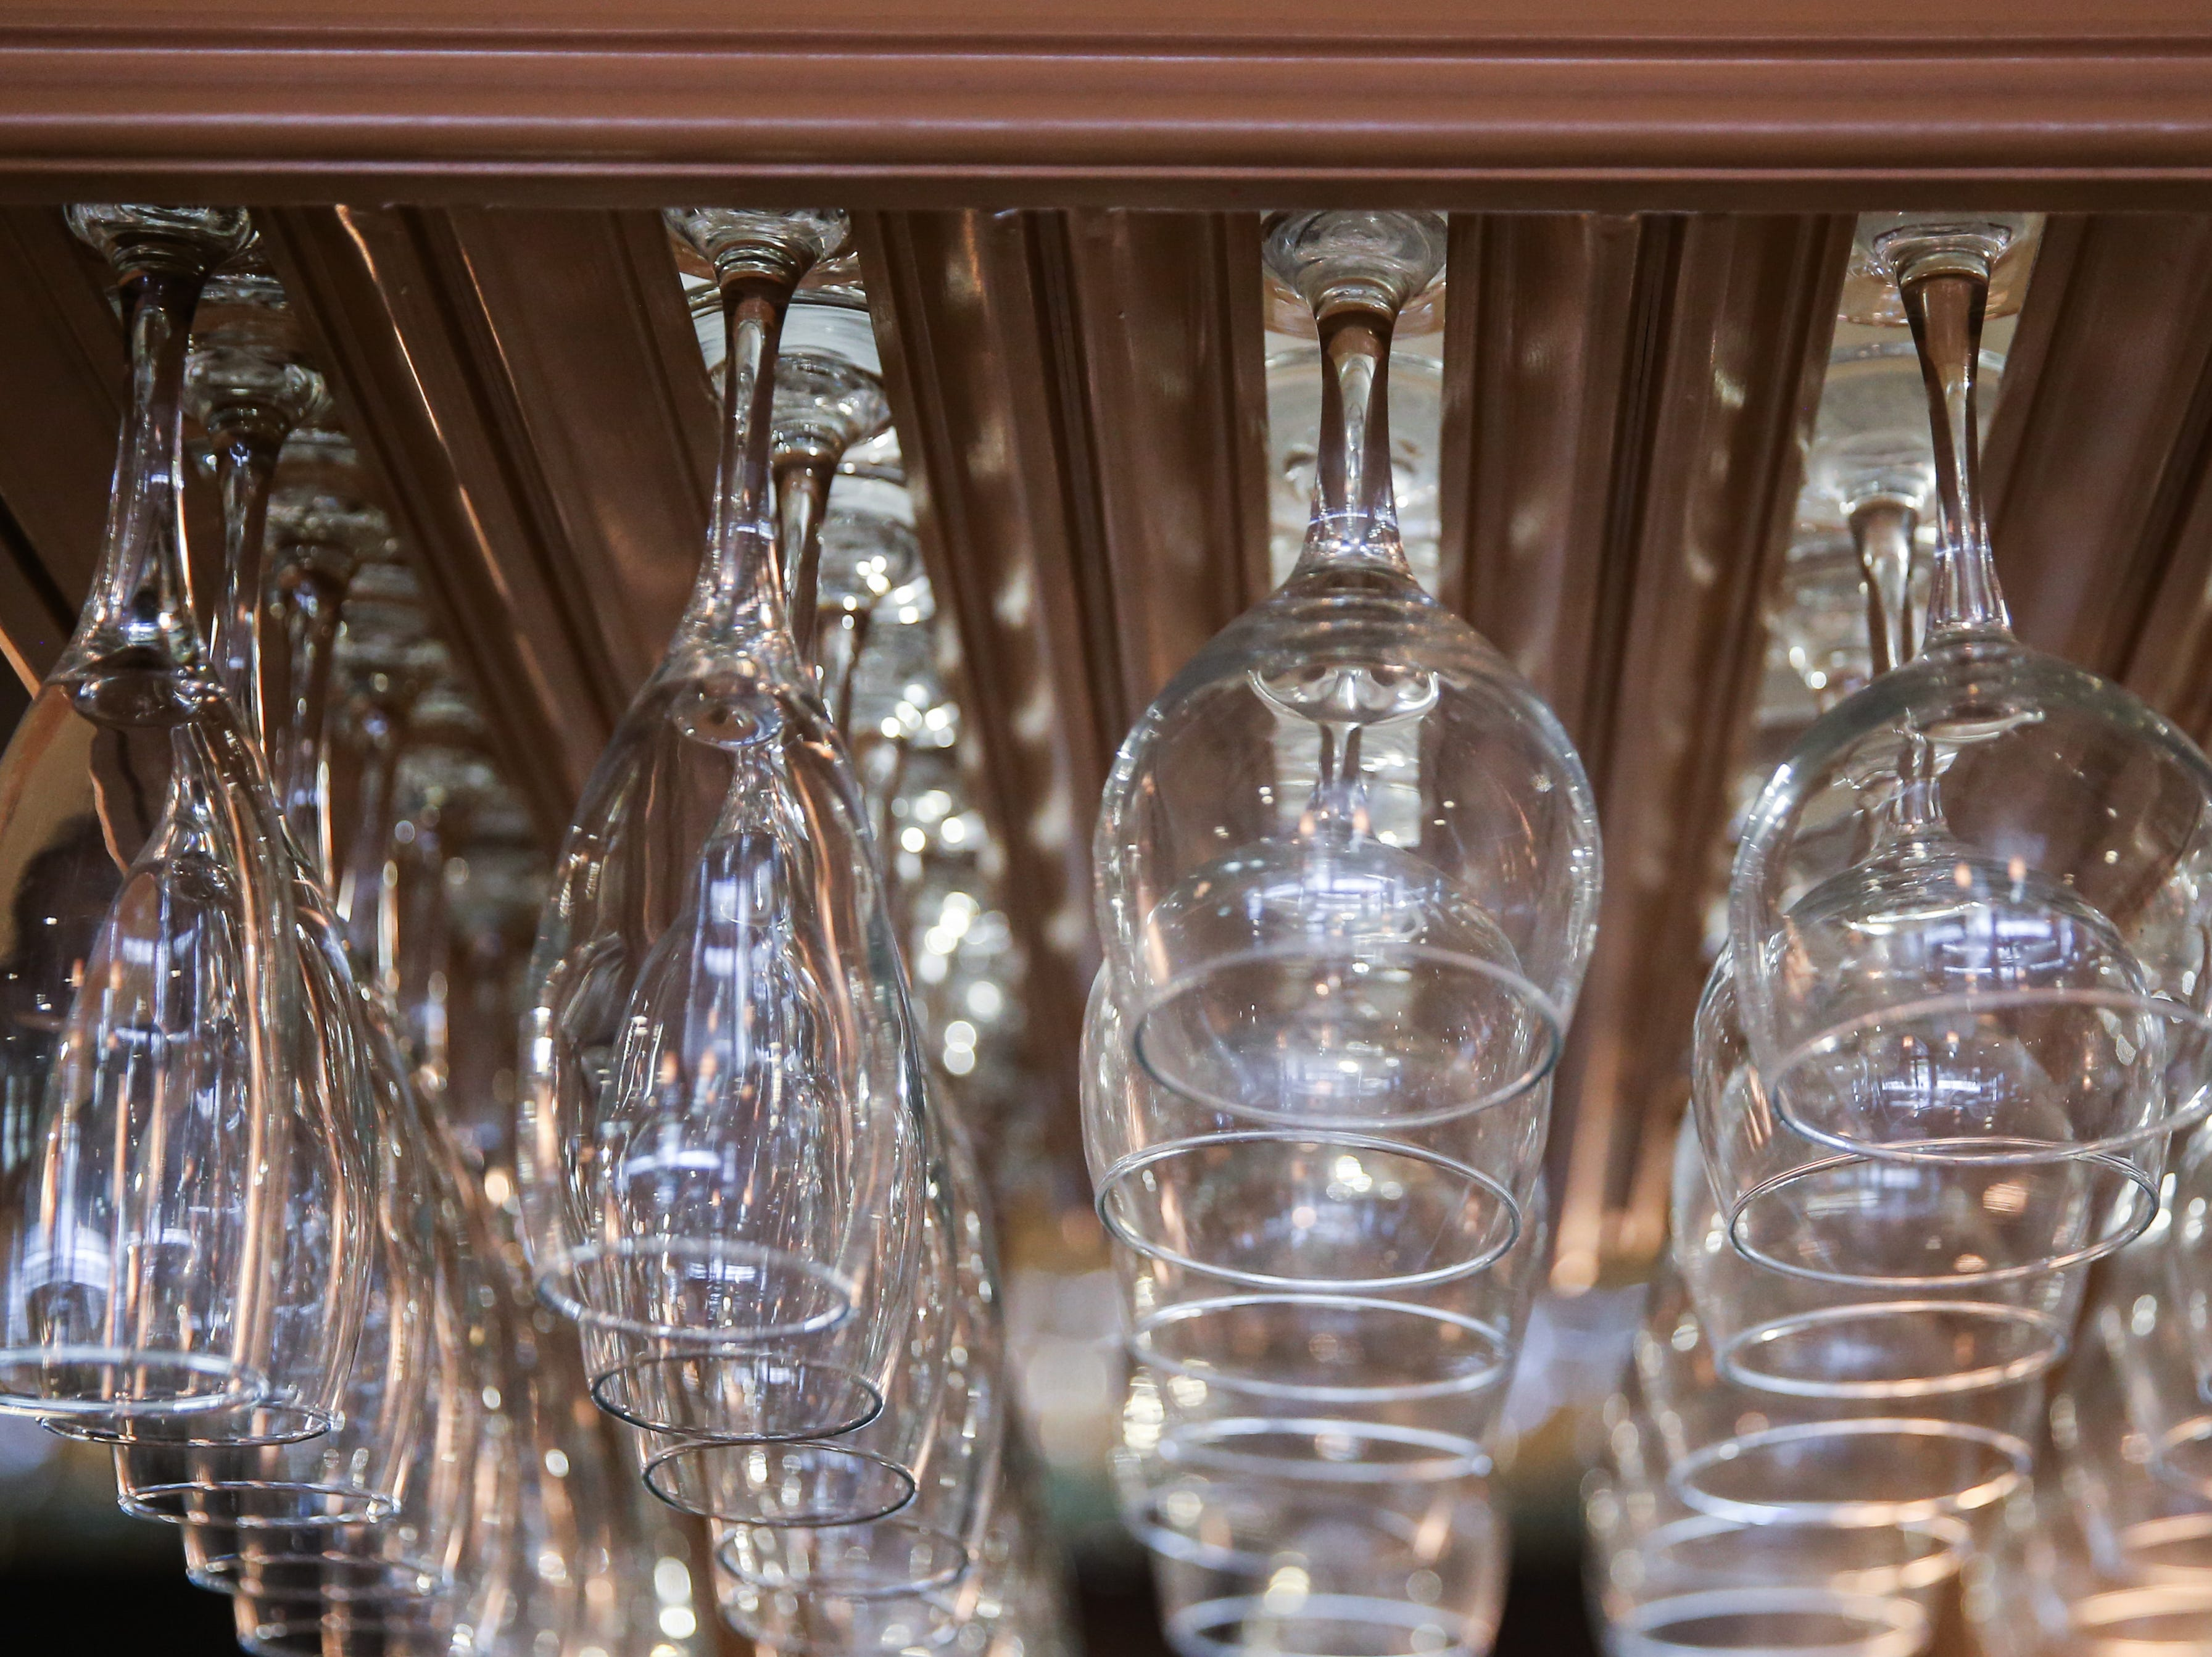 Wine glasses are stacked above the bar at Napoli's Italian Restaurant.